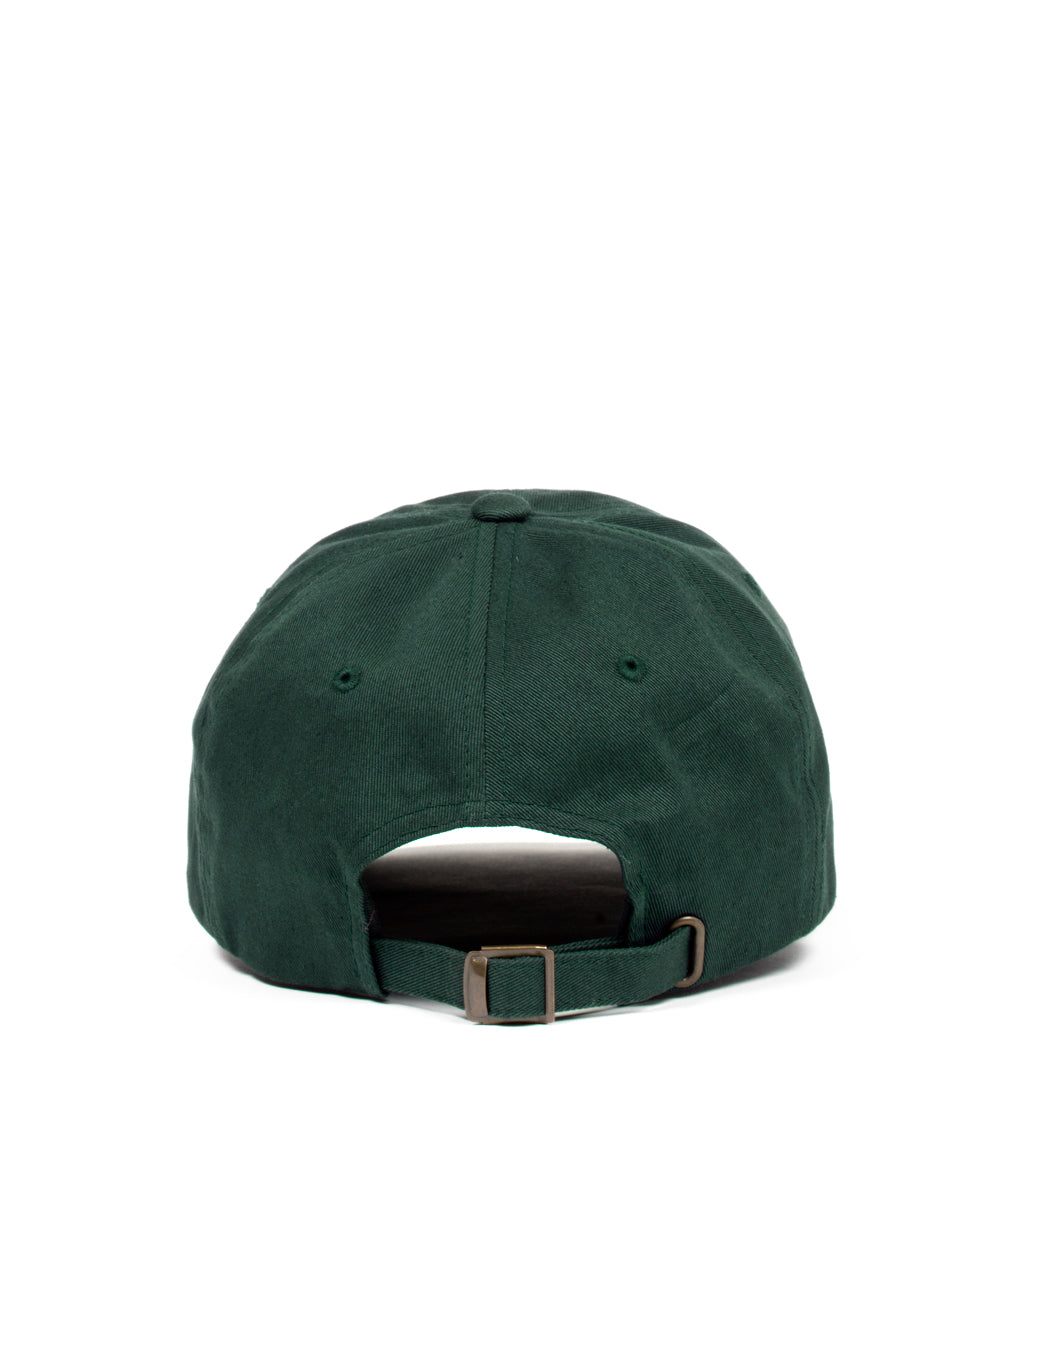 Tenderloin E Cotton Baseball Cap  - Green - Eine London by Ben Eine